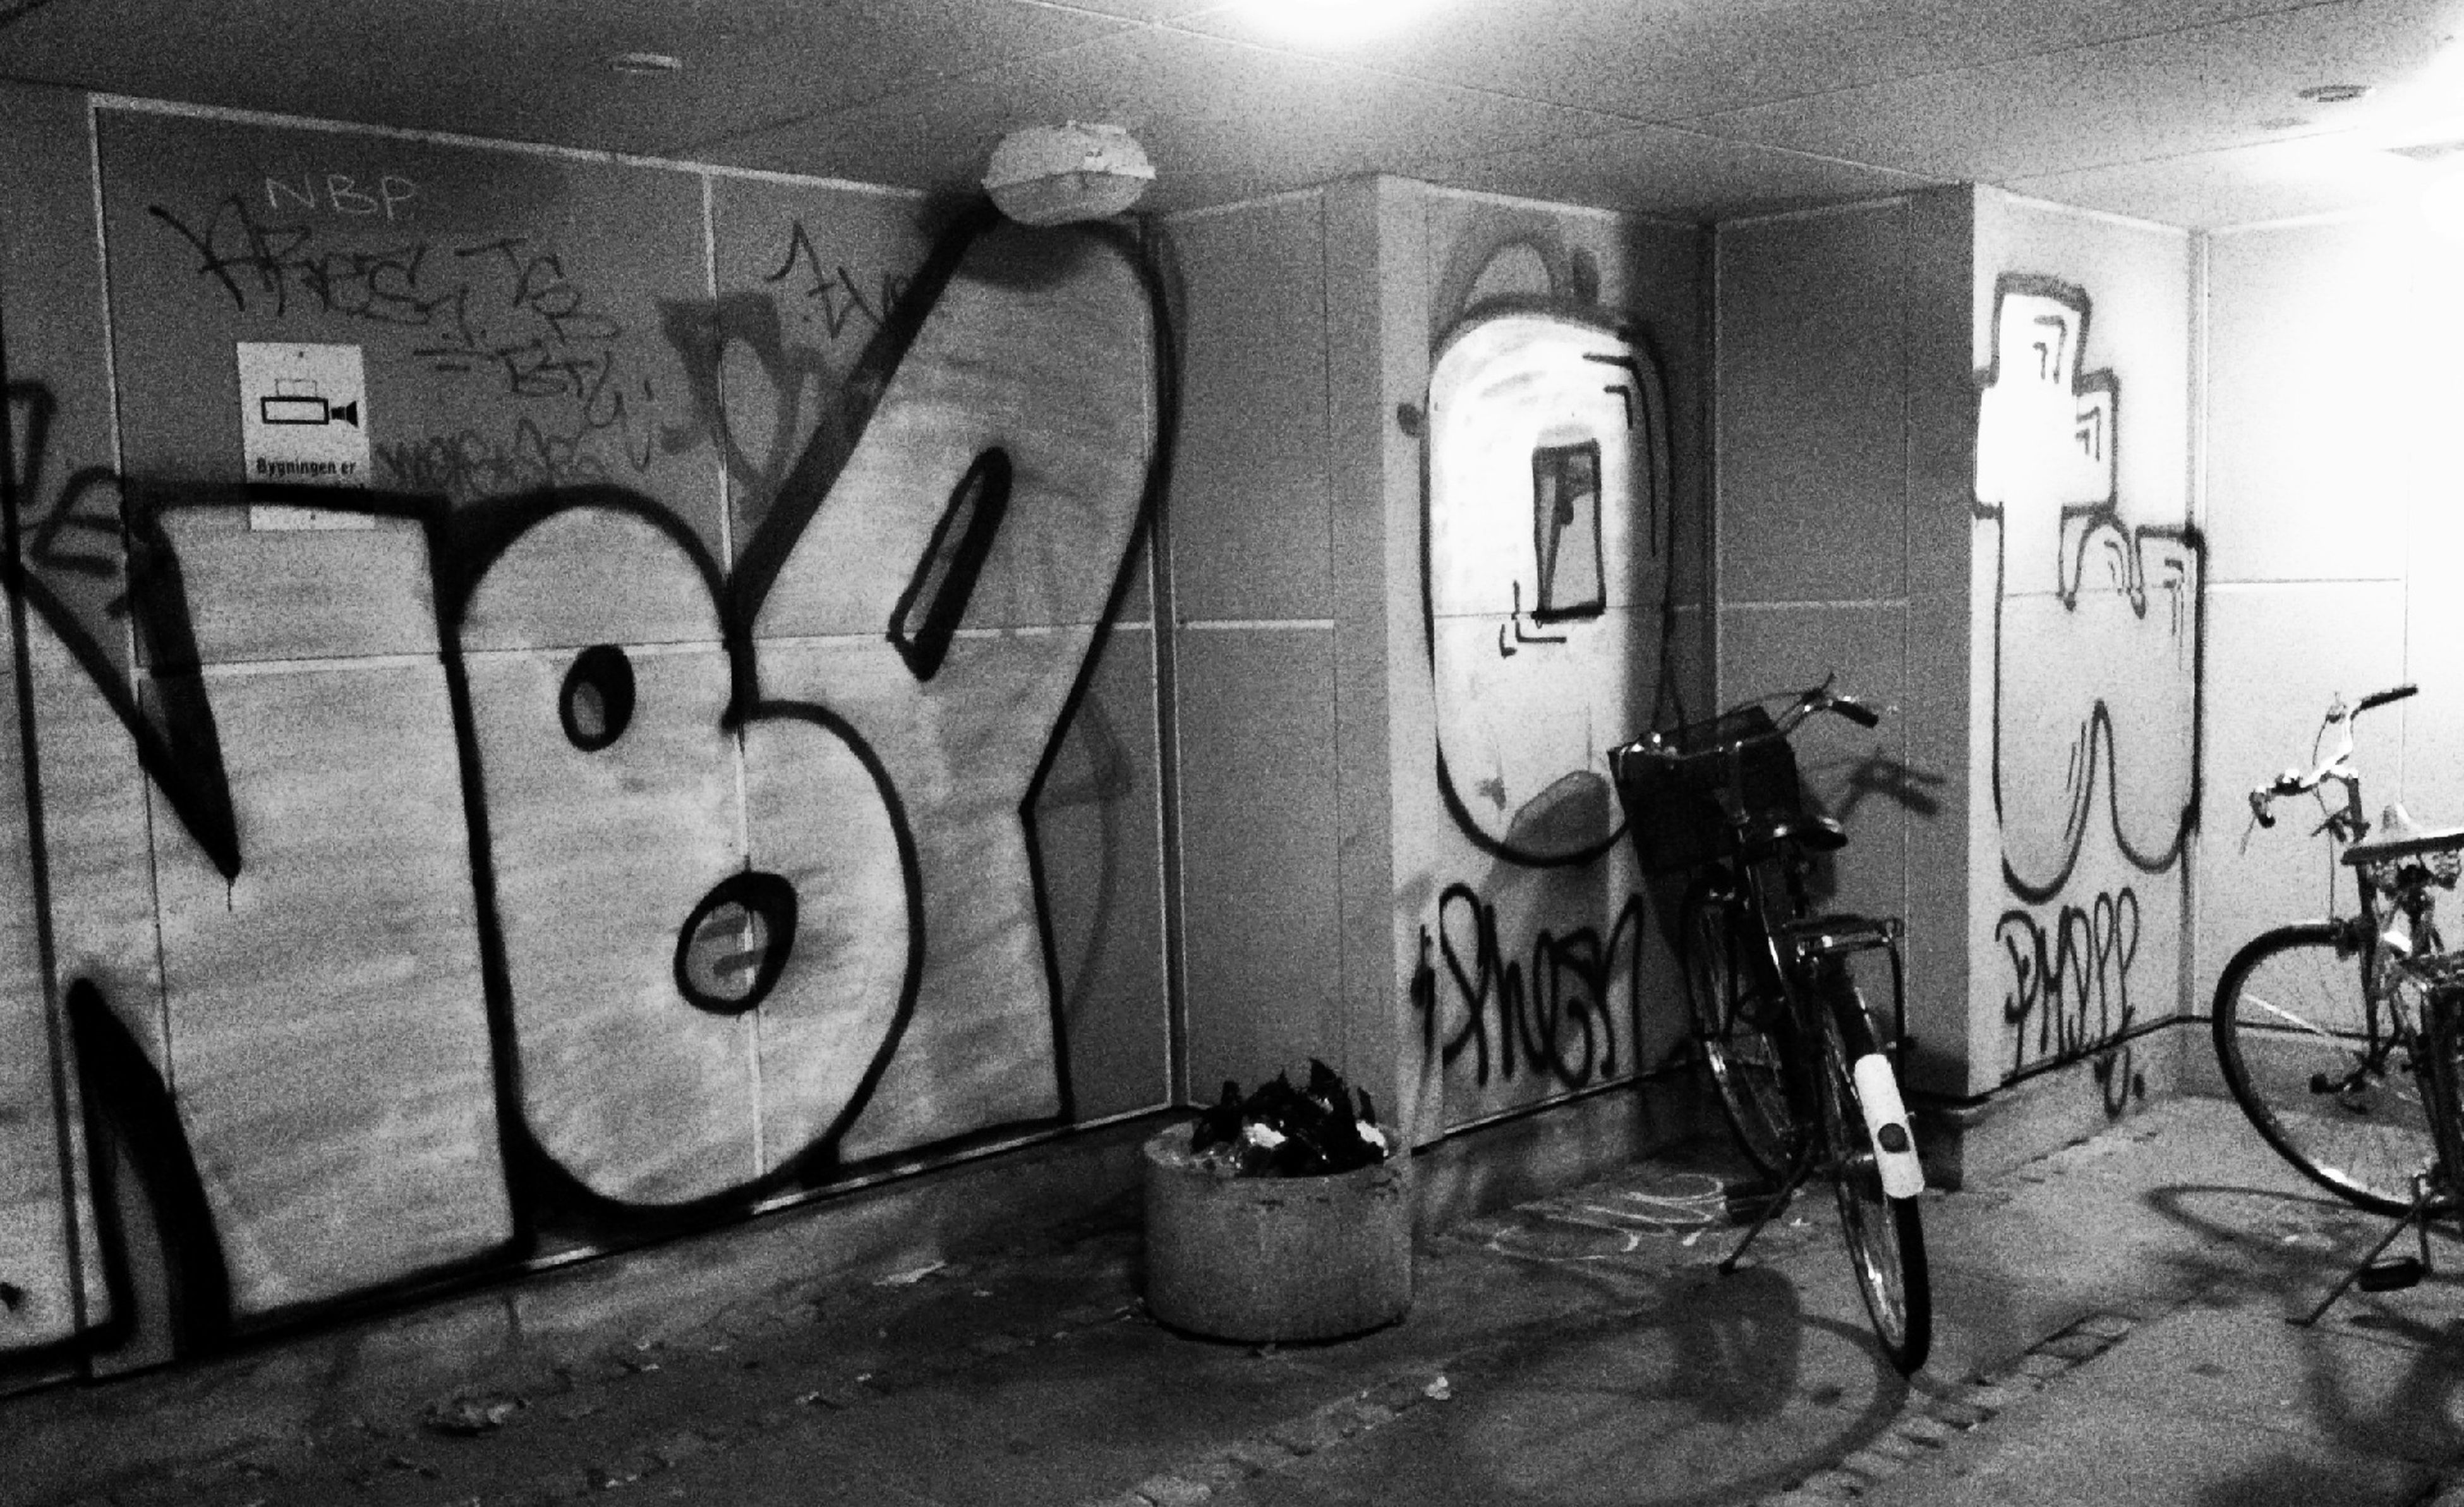 graffiti, wall - building feature, built structure, indoors, architecture, art and craft, wall, art, creativity, no people, bicycle, street art, day, door, abandoned, building exterior, metal, absence, old, text